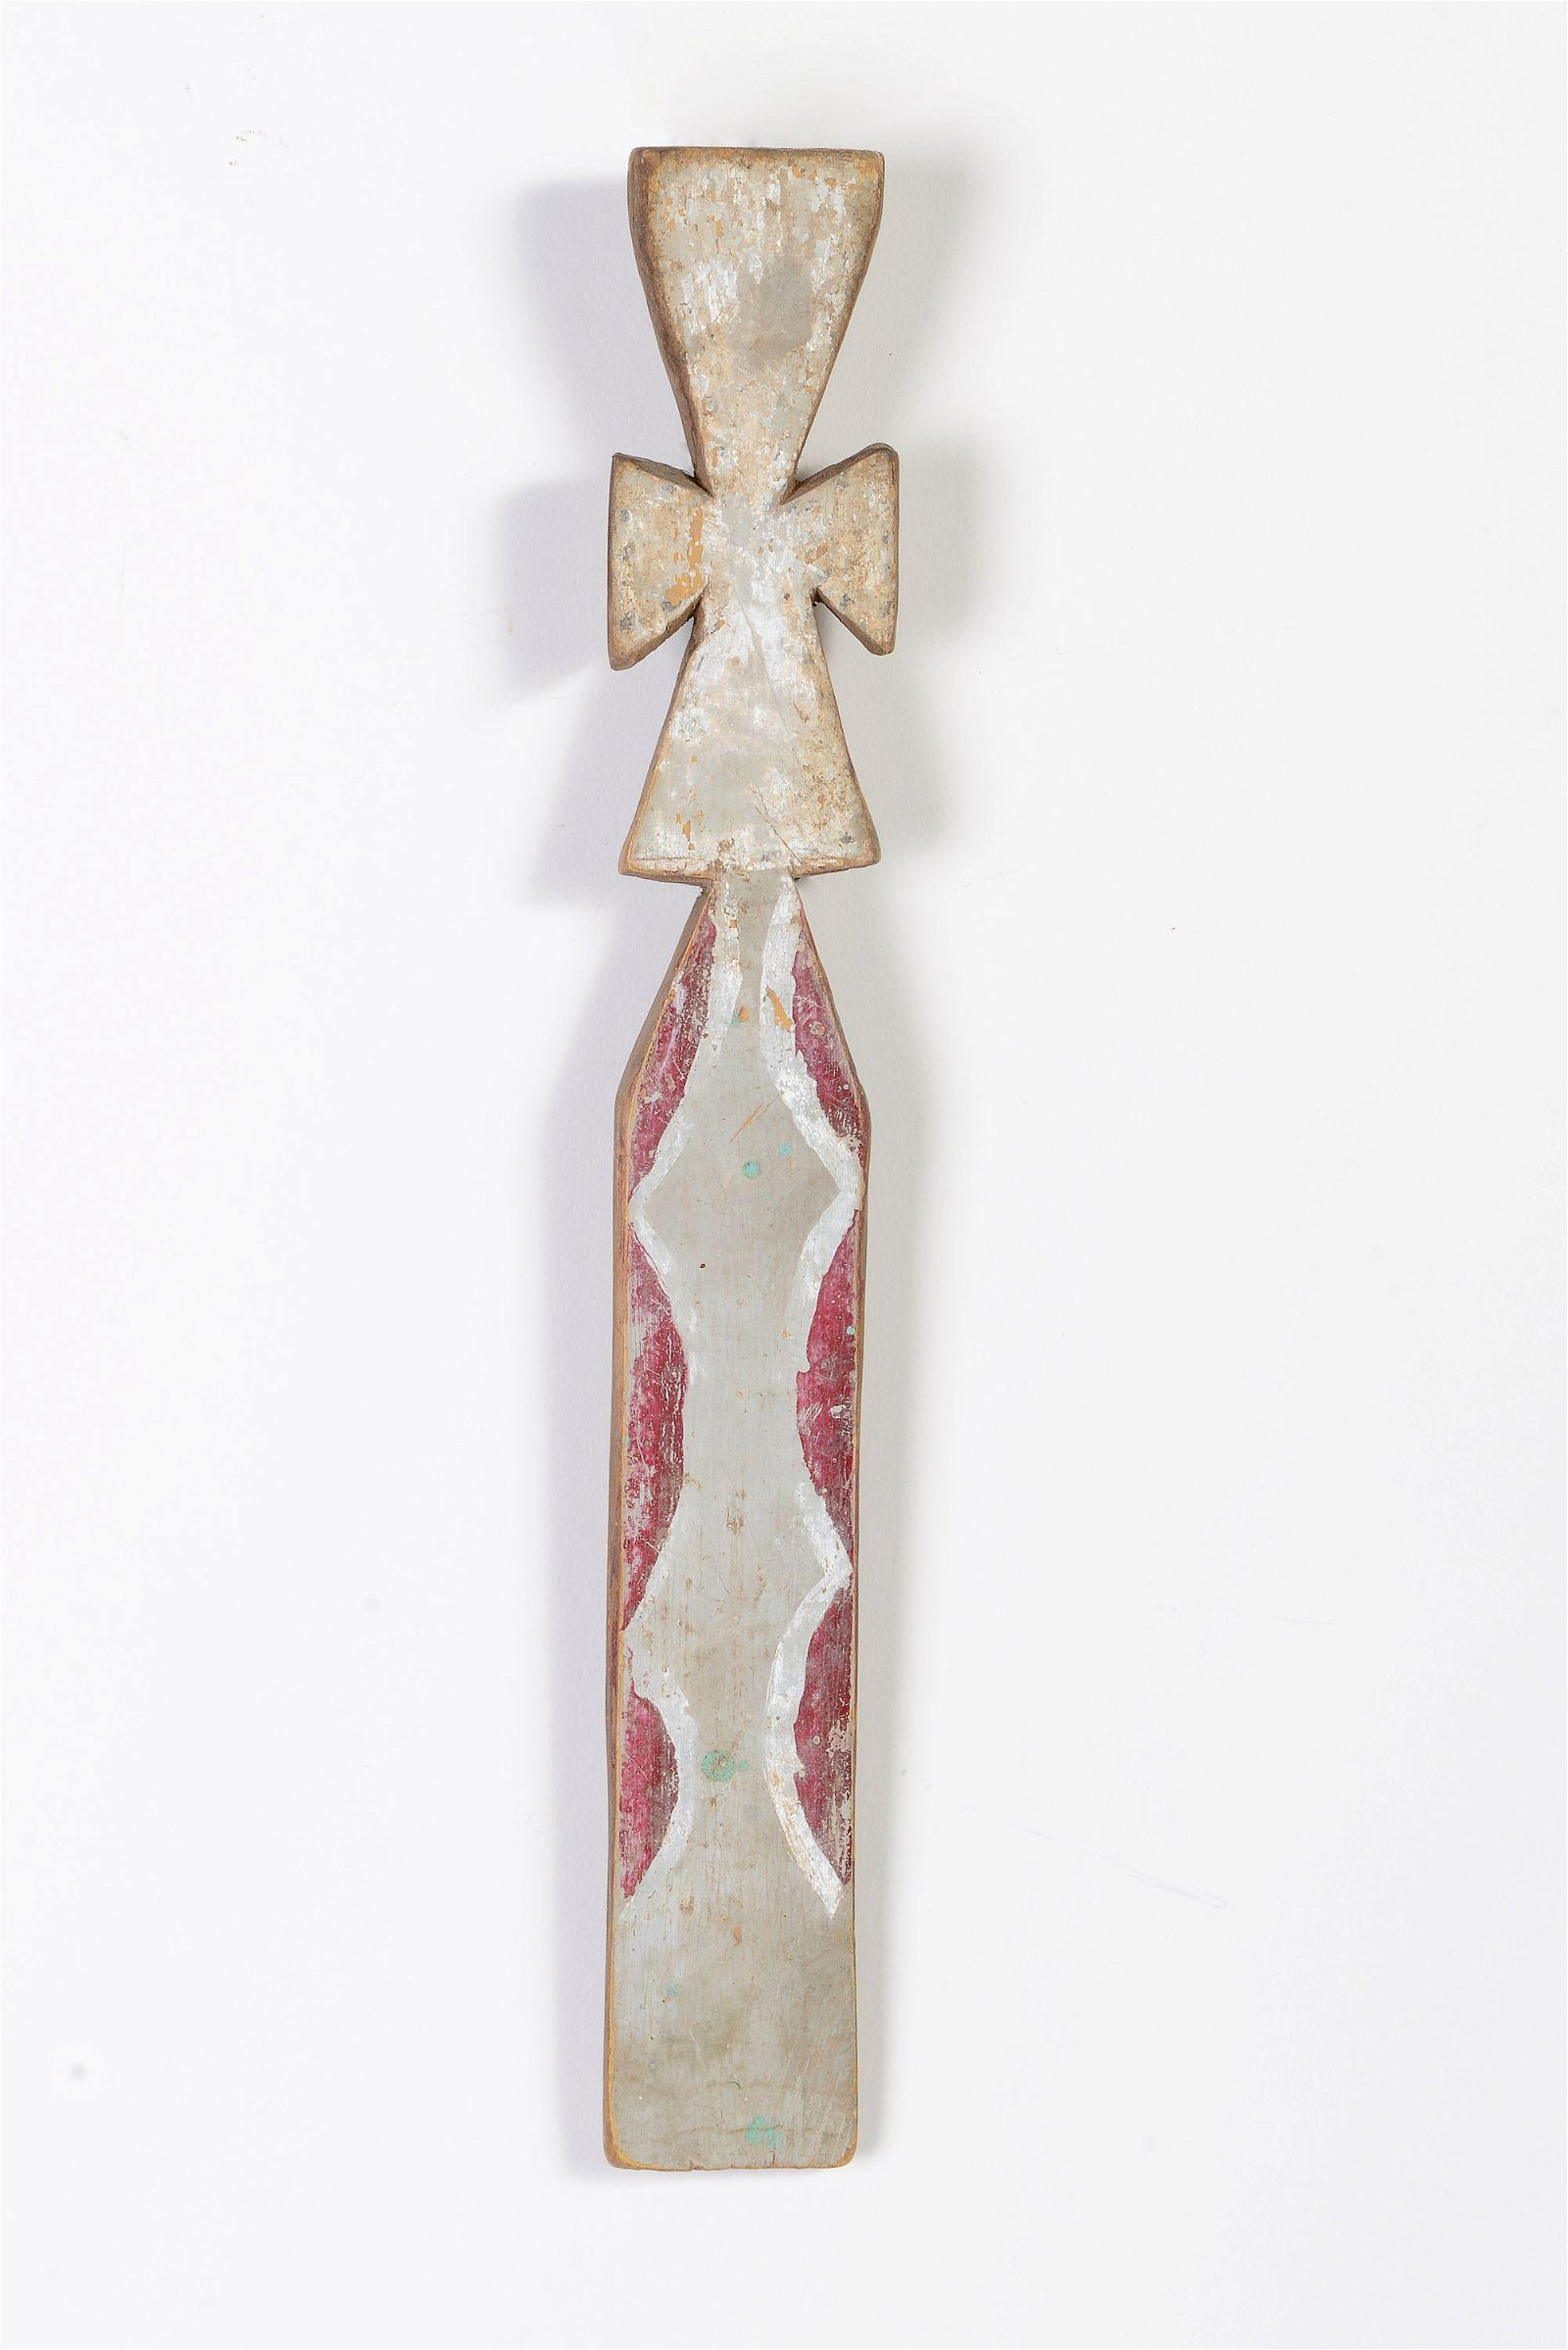 Wooden Processional Cross, 19th Century